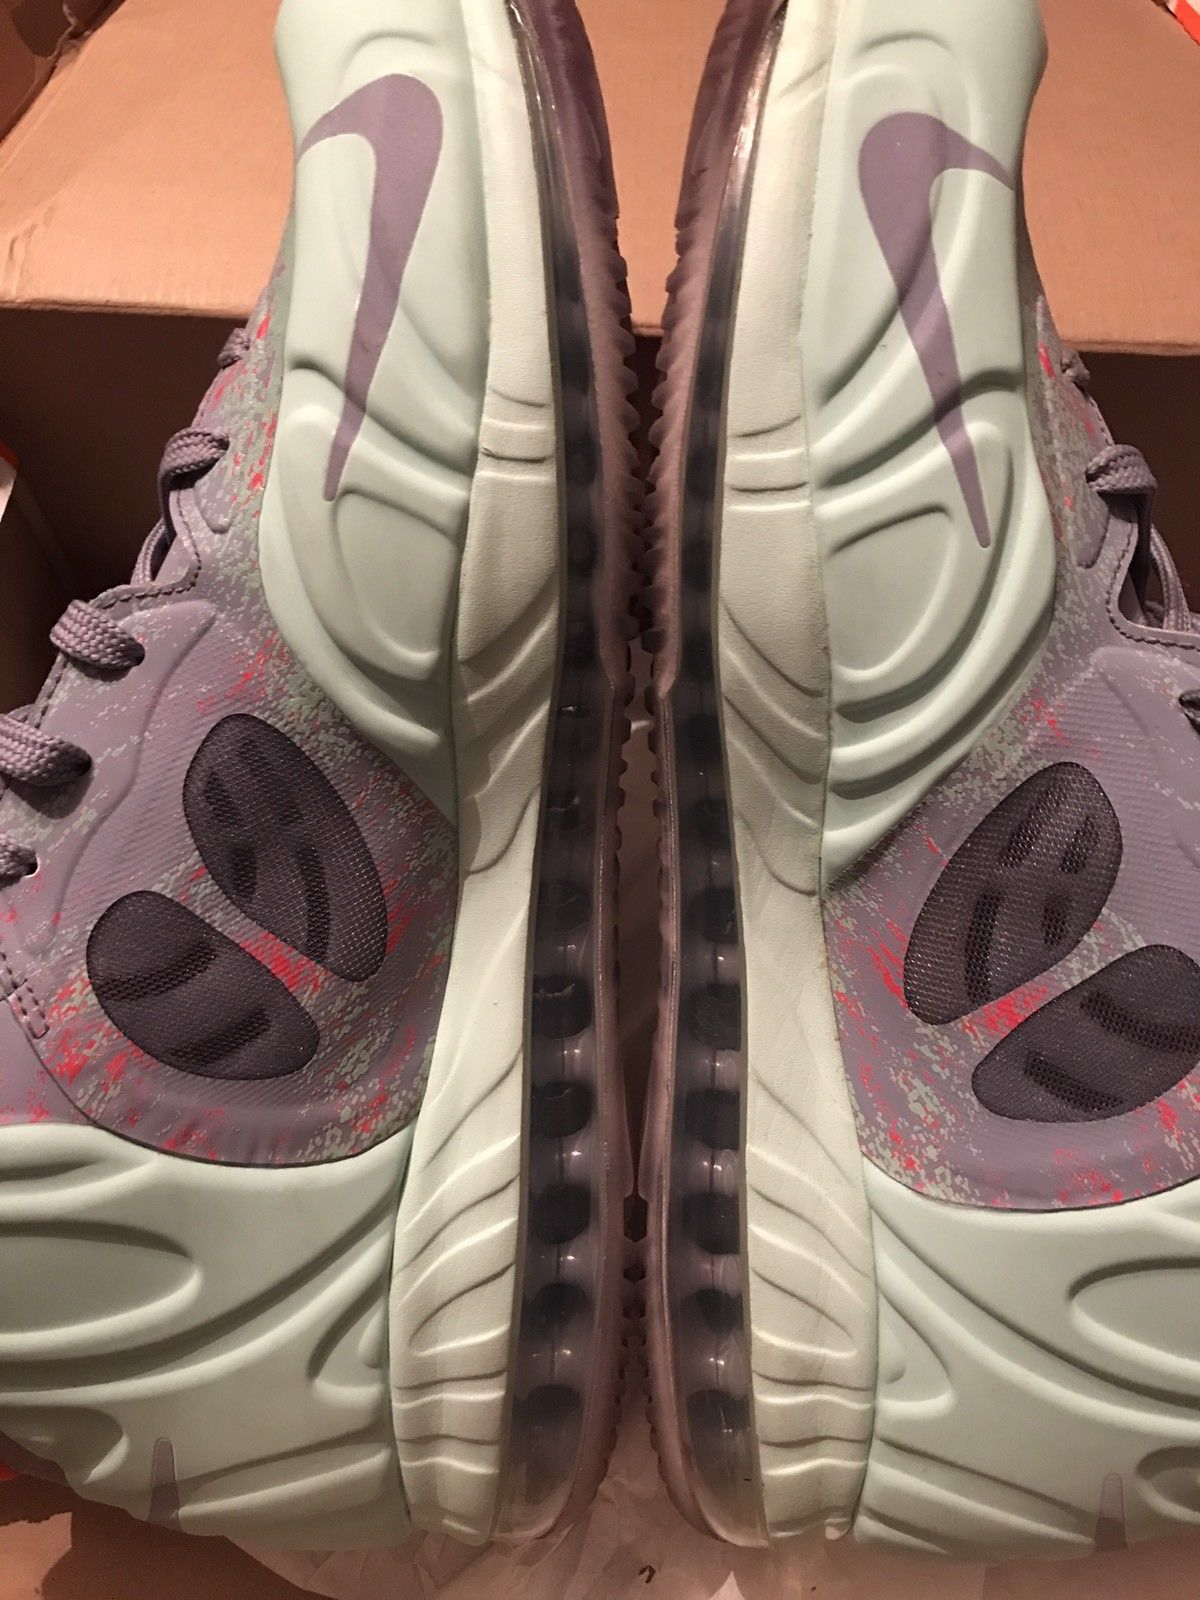 Image of Nike Air Max Hyperposite Rondo Foamposite Eggplant Royal - Size 13 - Used Once